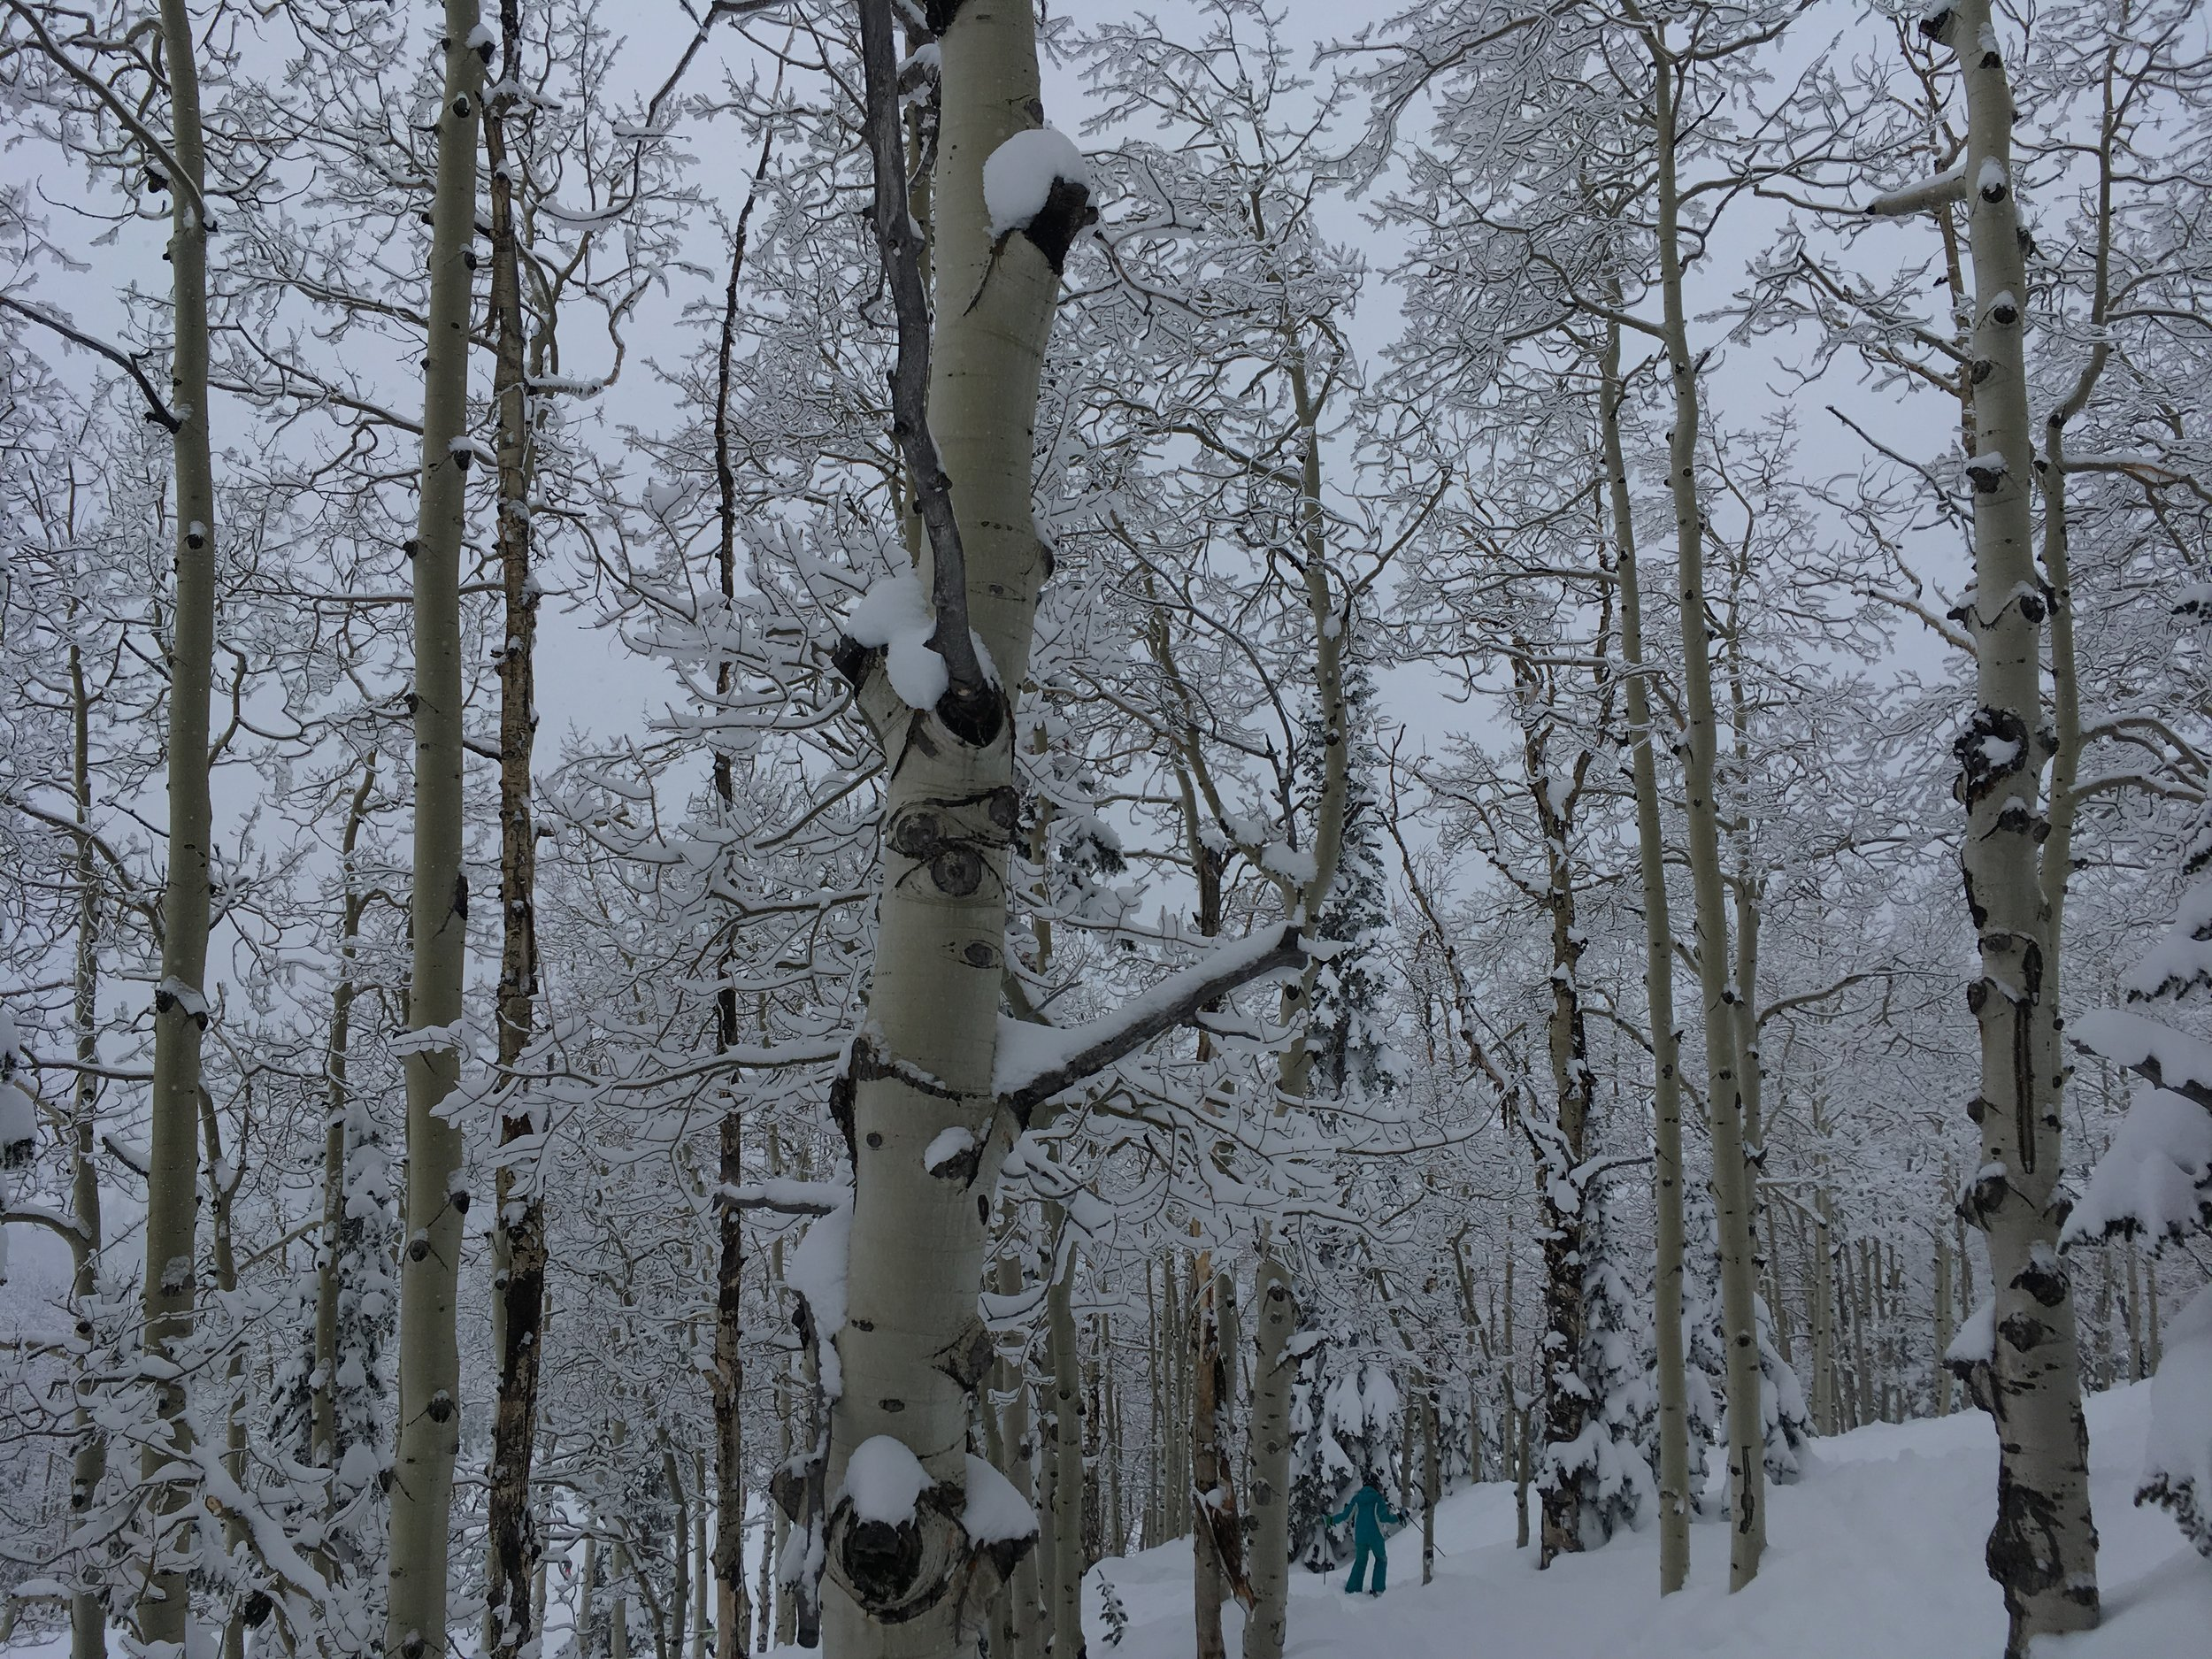 snowy trees - skiing.jpg